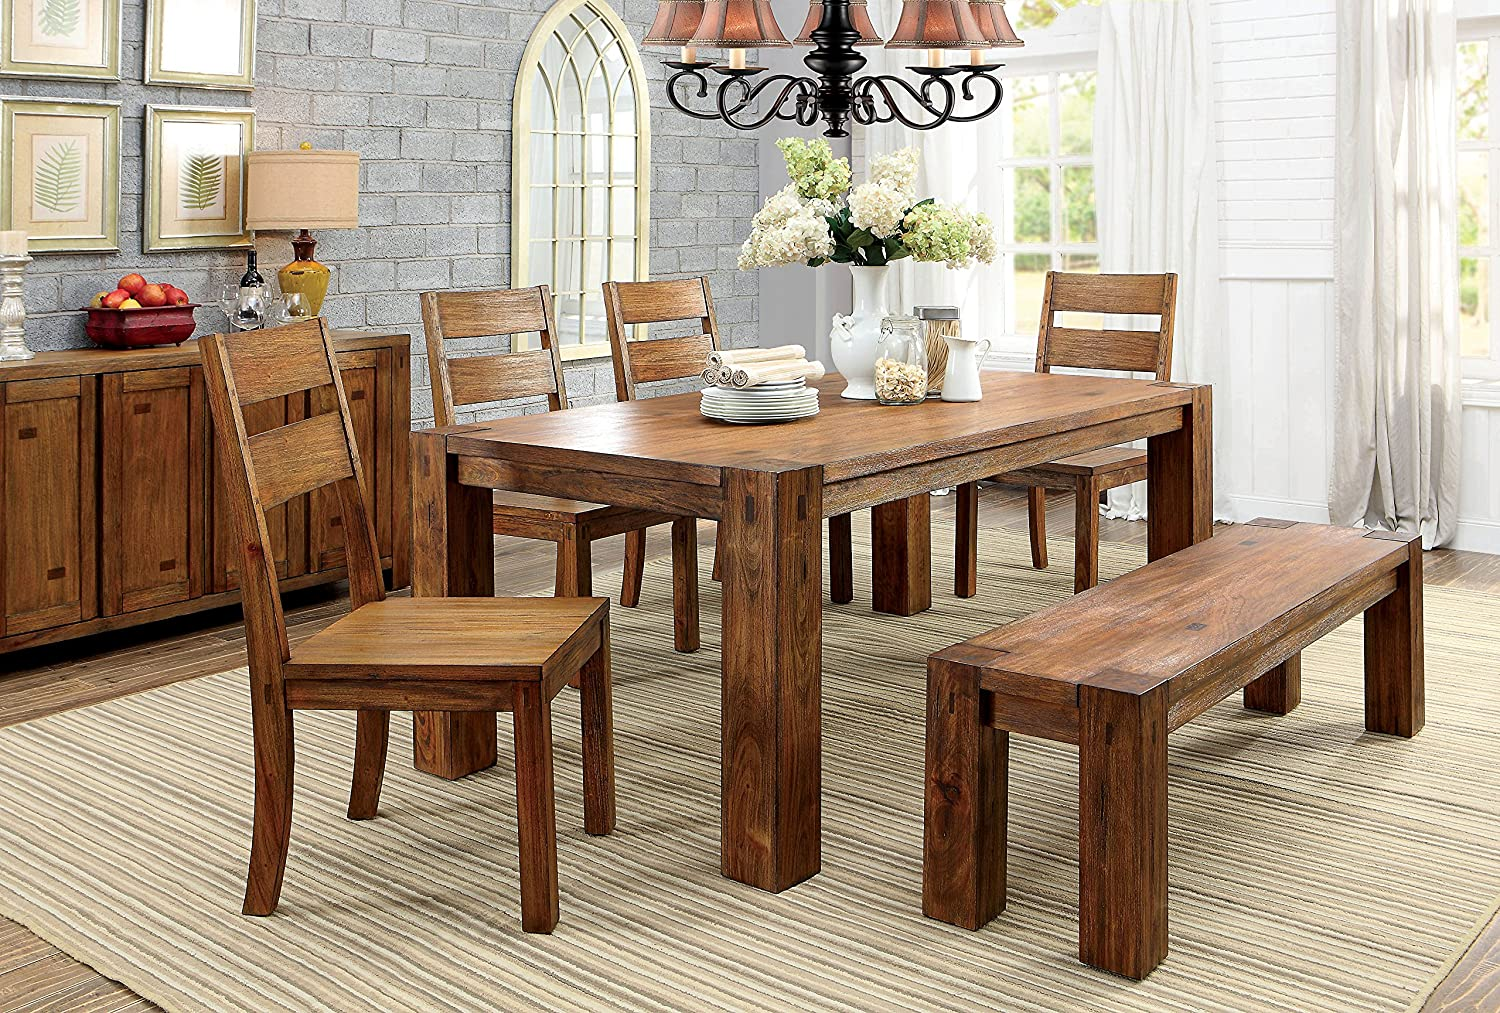 Furniture of America Barkin Dining Table, Dark Oak